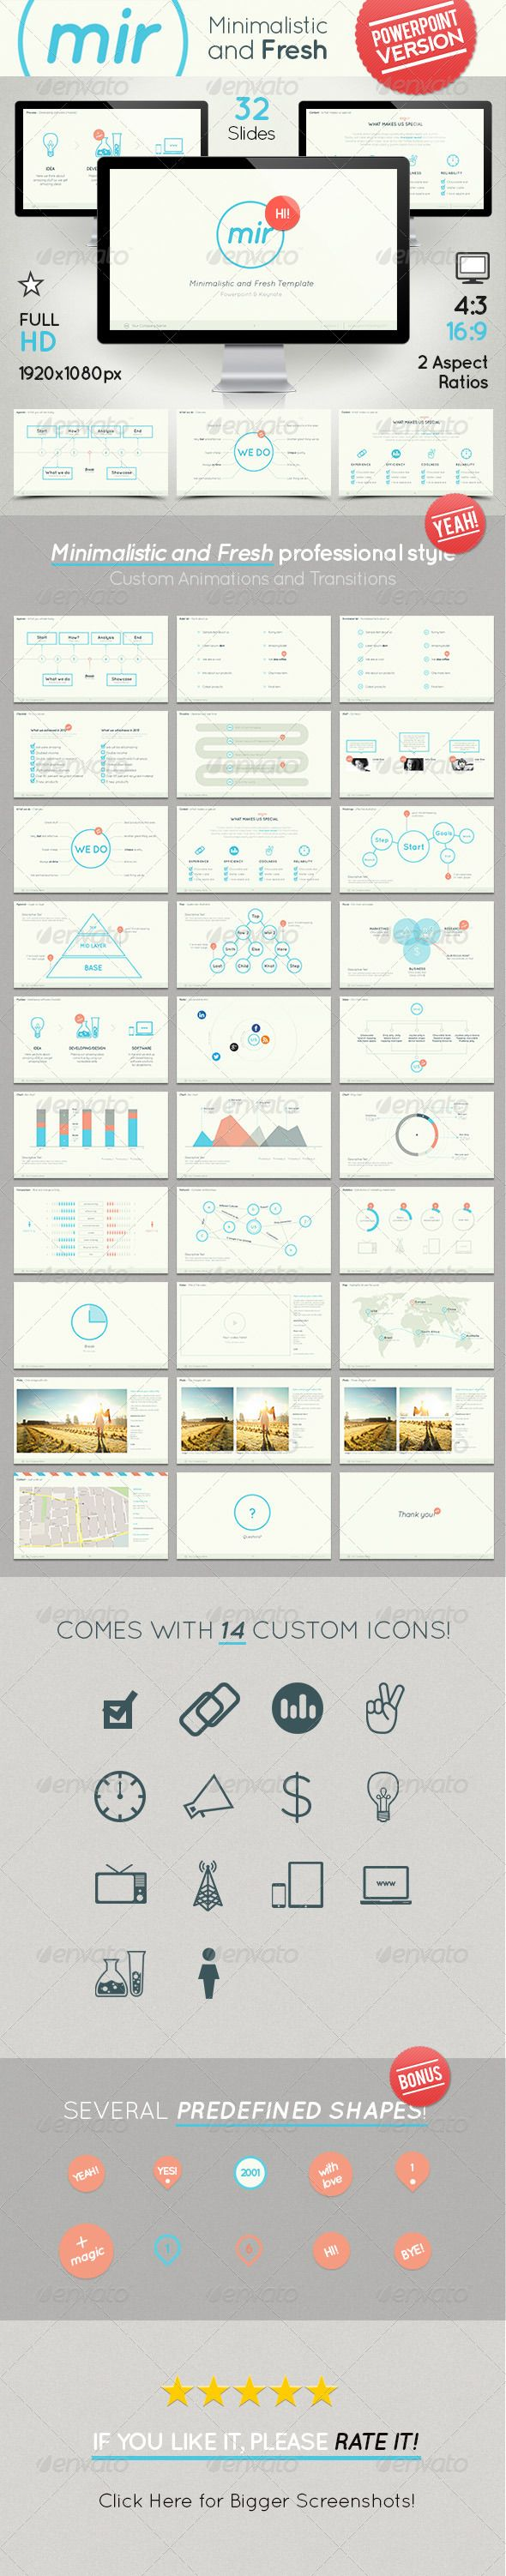 Mir - Minimalistic and Fresh Powerpoint Template - Powerpoint Templates Presentation Templates